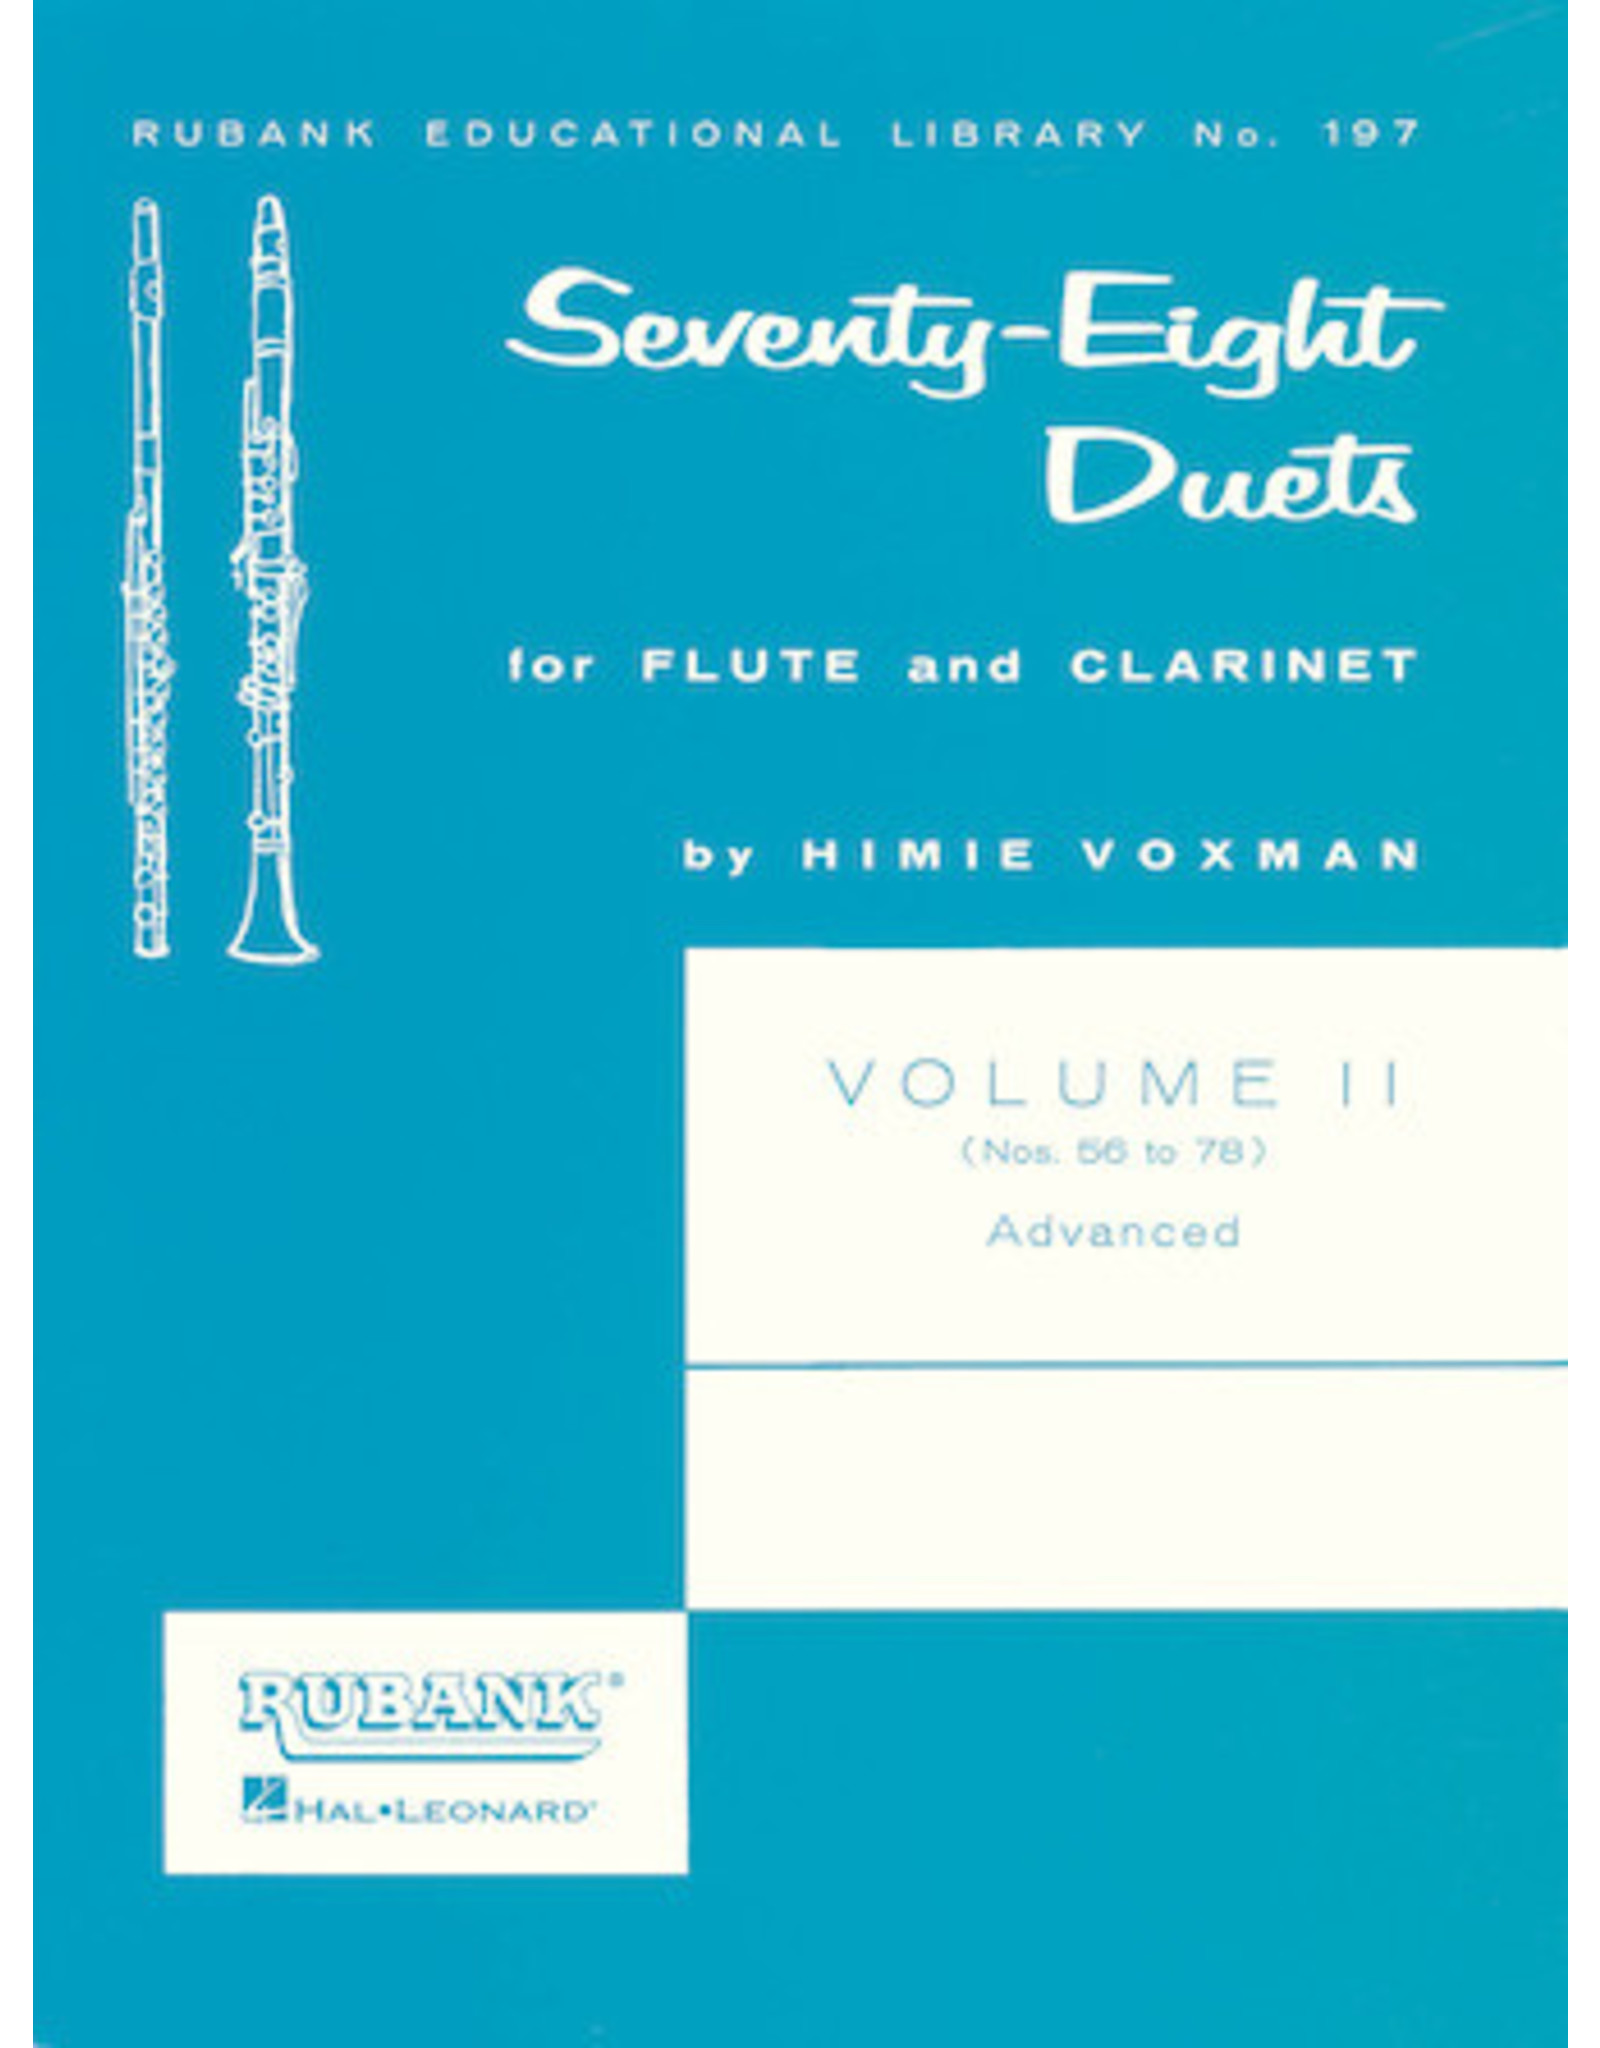 Hal Leonard 78 Duets for Flute and Clarinet Volume 2 - Advanced (Nos. 56-78) edited by H. Voxman Ensemble Collection